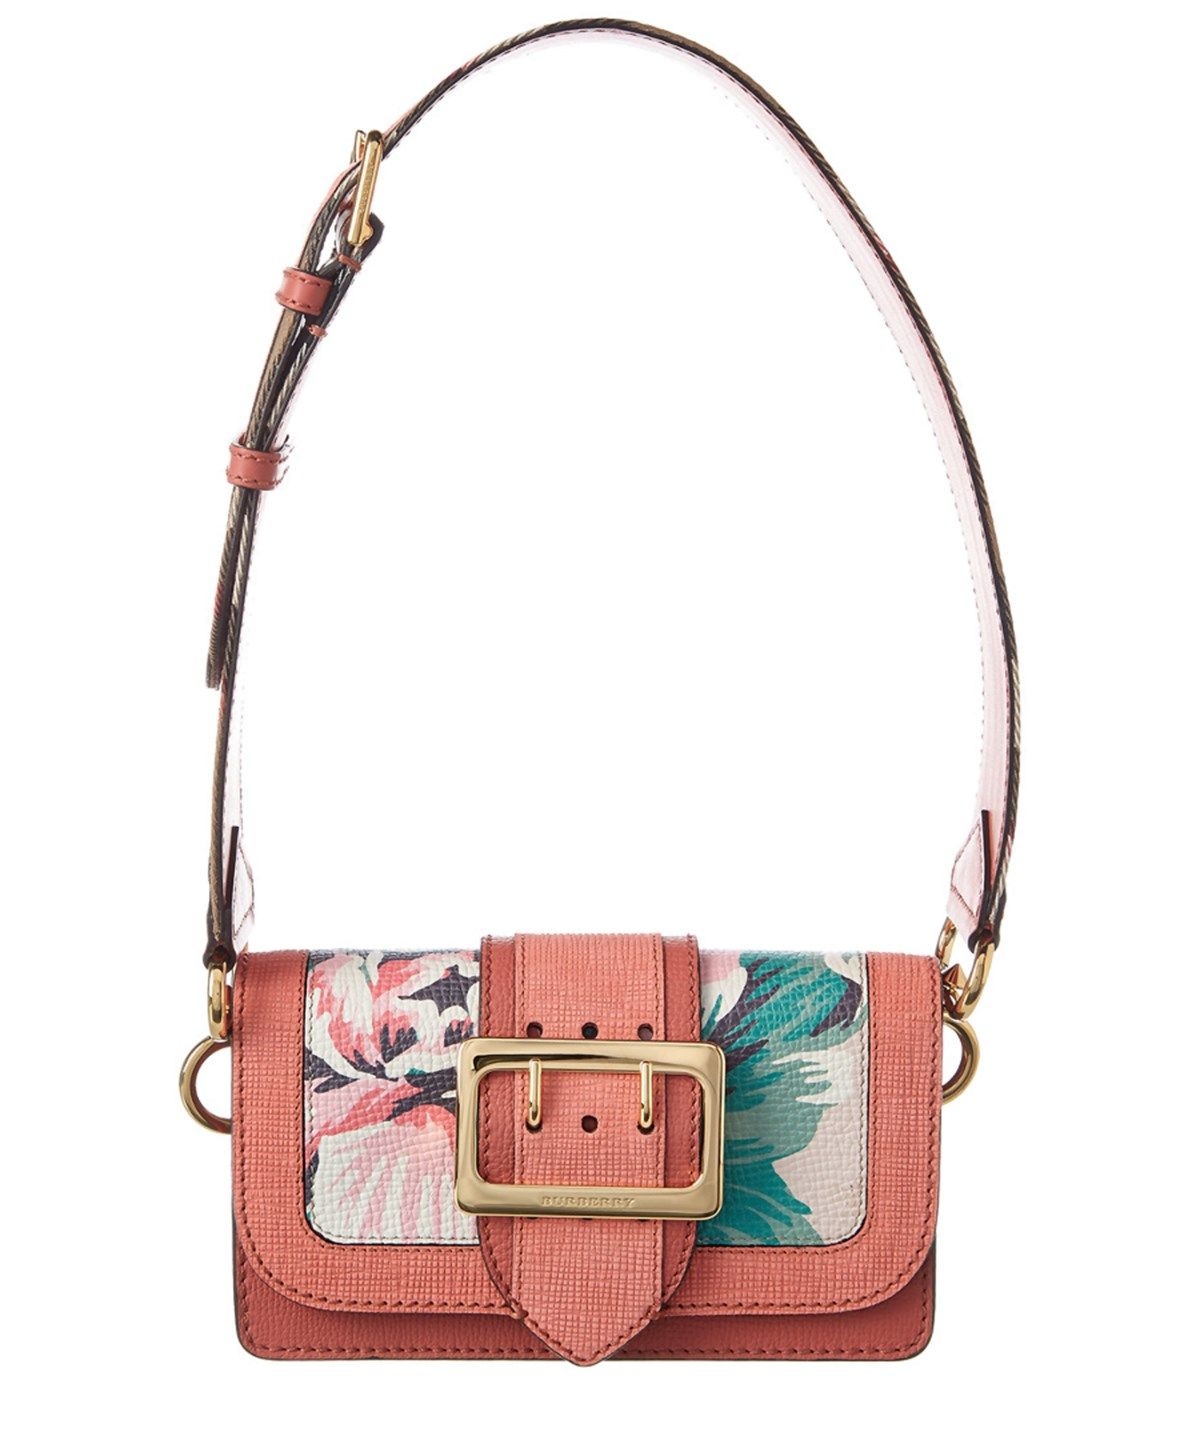 BURBERRY Burberry Peony Rose Print Small Leather Buckle Bag .  burberry   bags  shoulder bags  leather  lining   f440141009